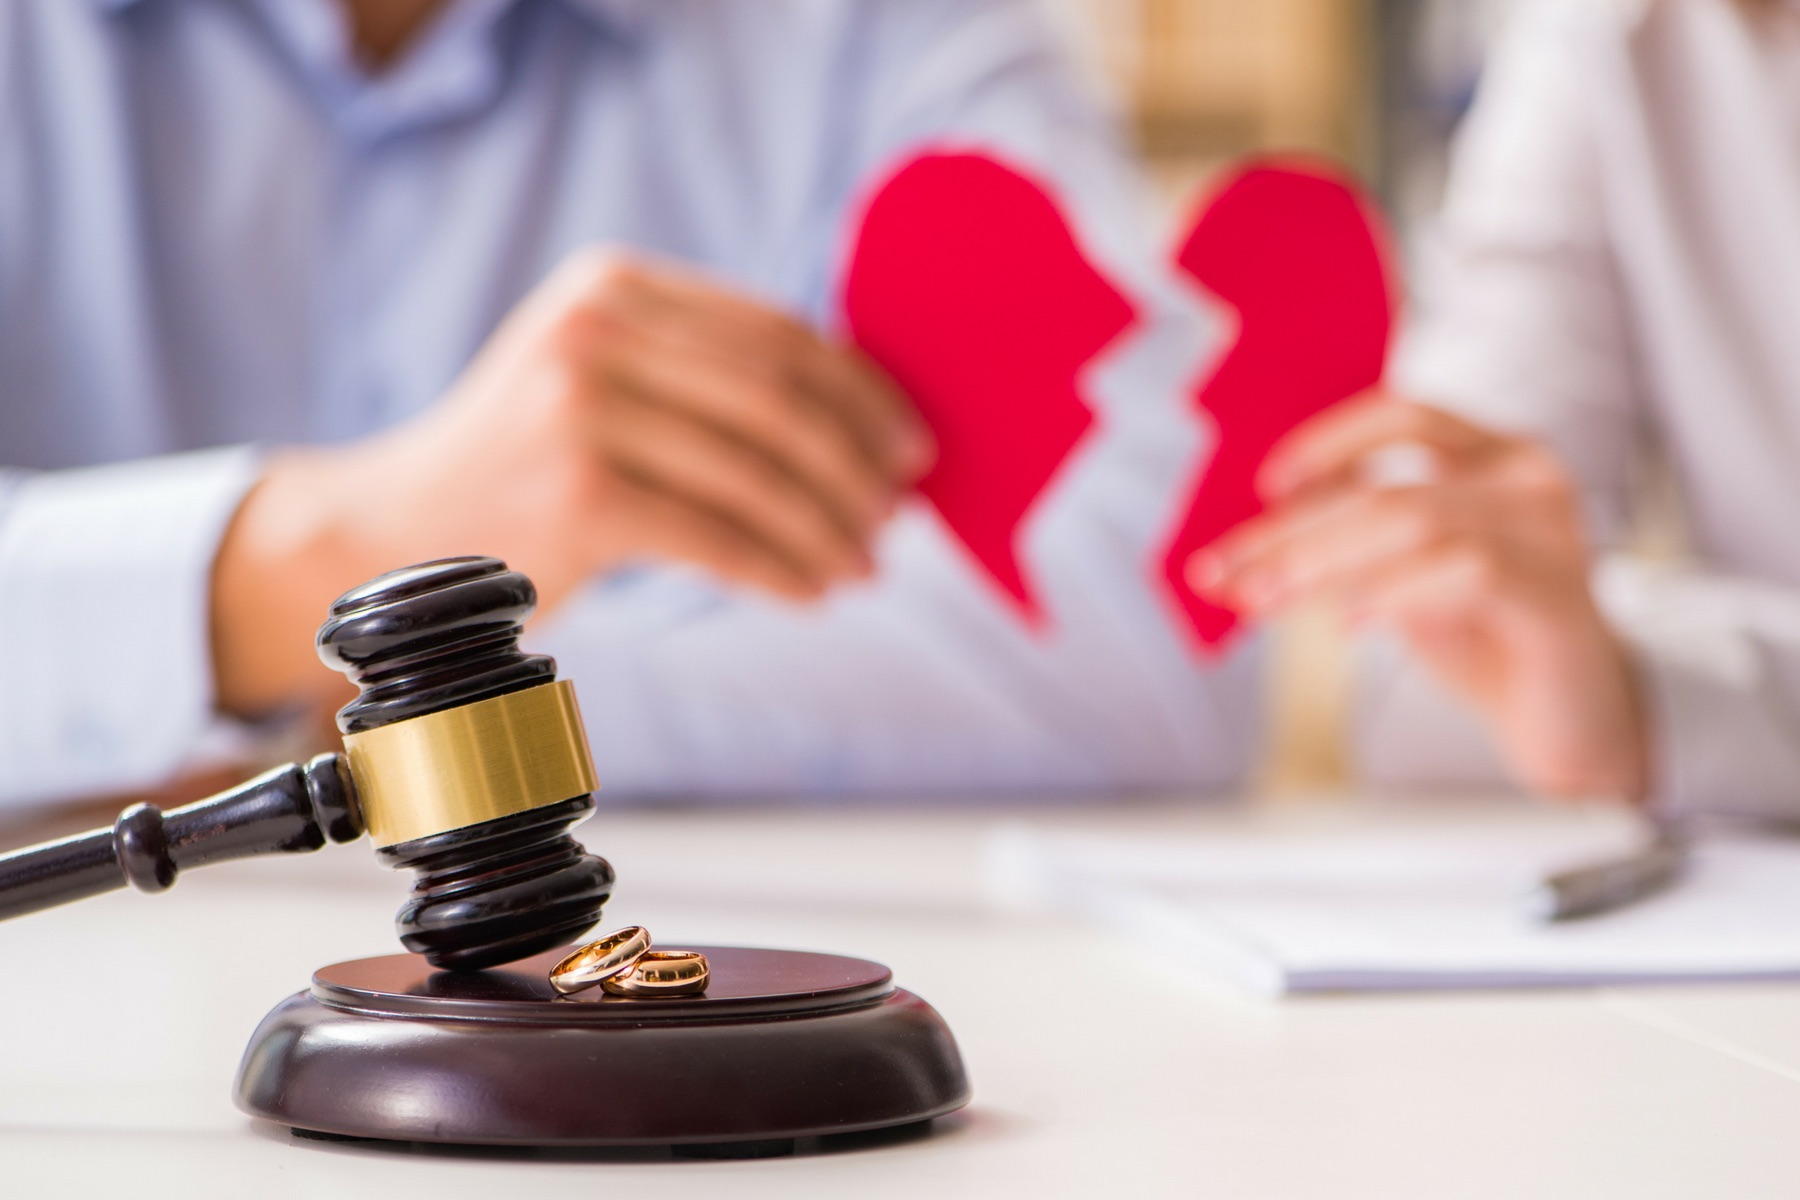 divorce settlement case studies Mediation v case settlement: the unsettling relations between courts and mediation - a case study mordehai (moti) mironi abstract this article utilizes a case study of israel's experiment with me.